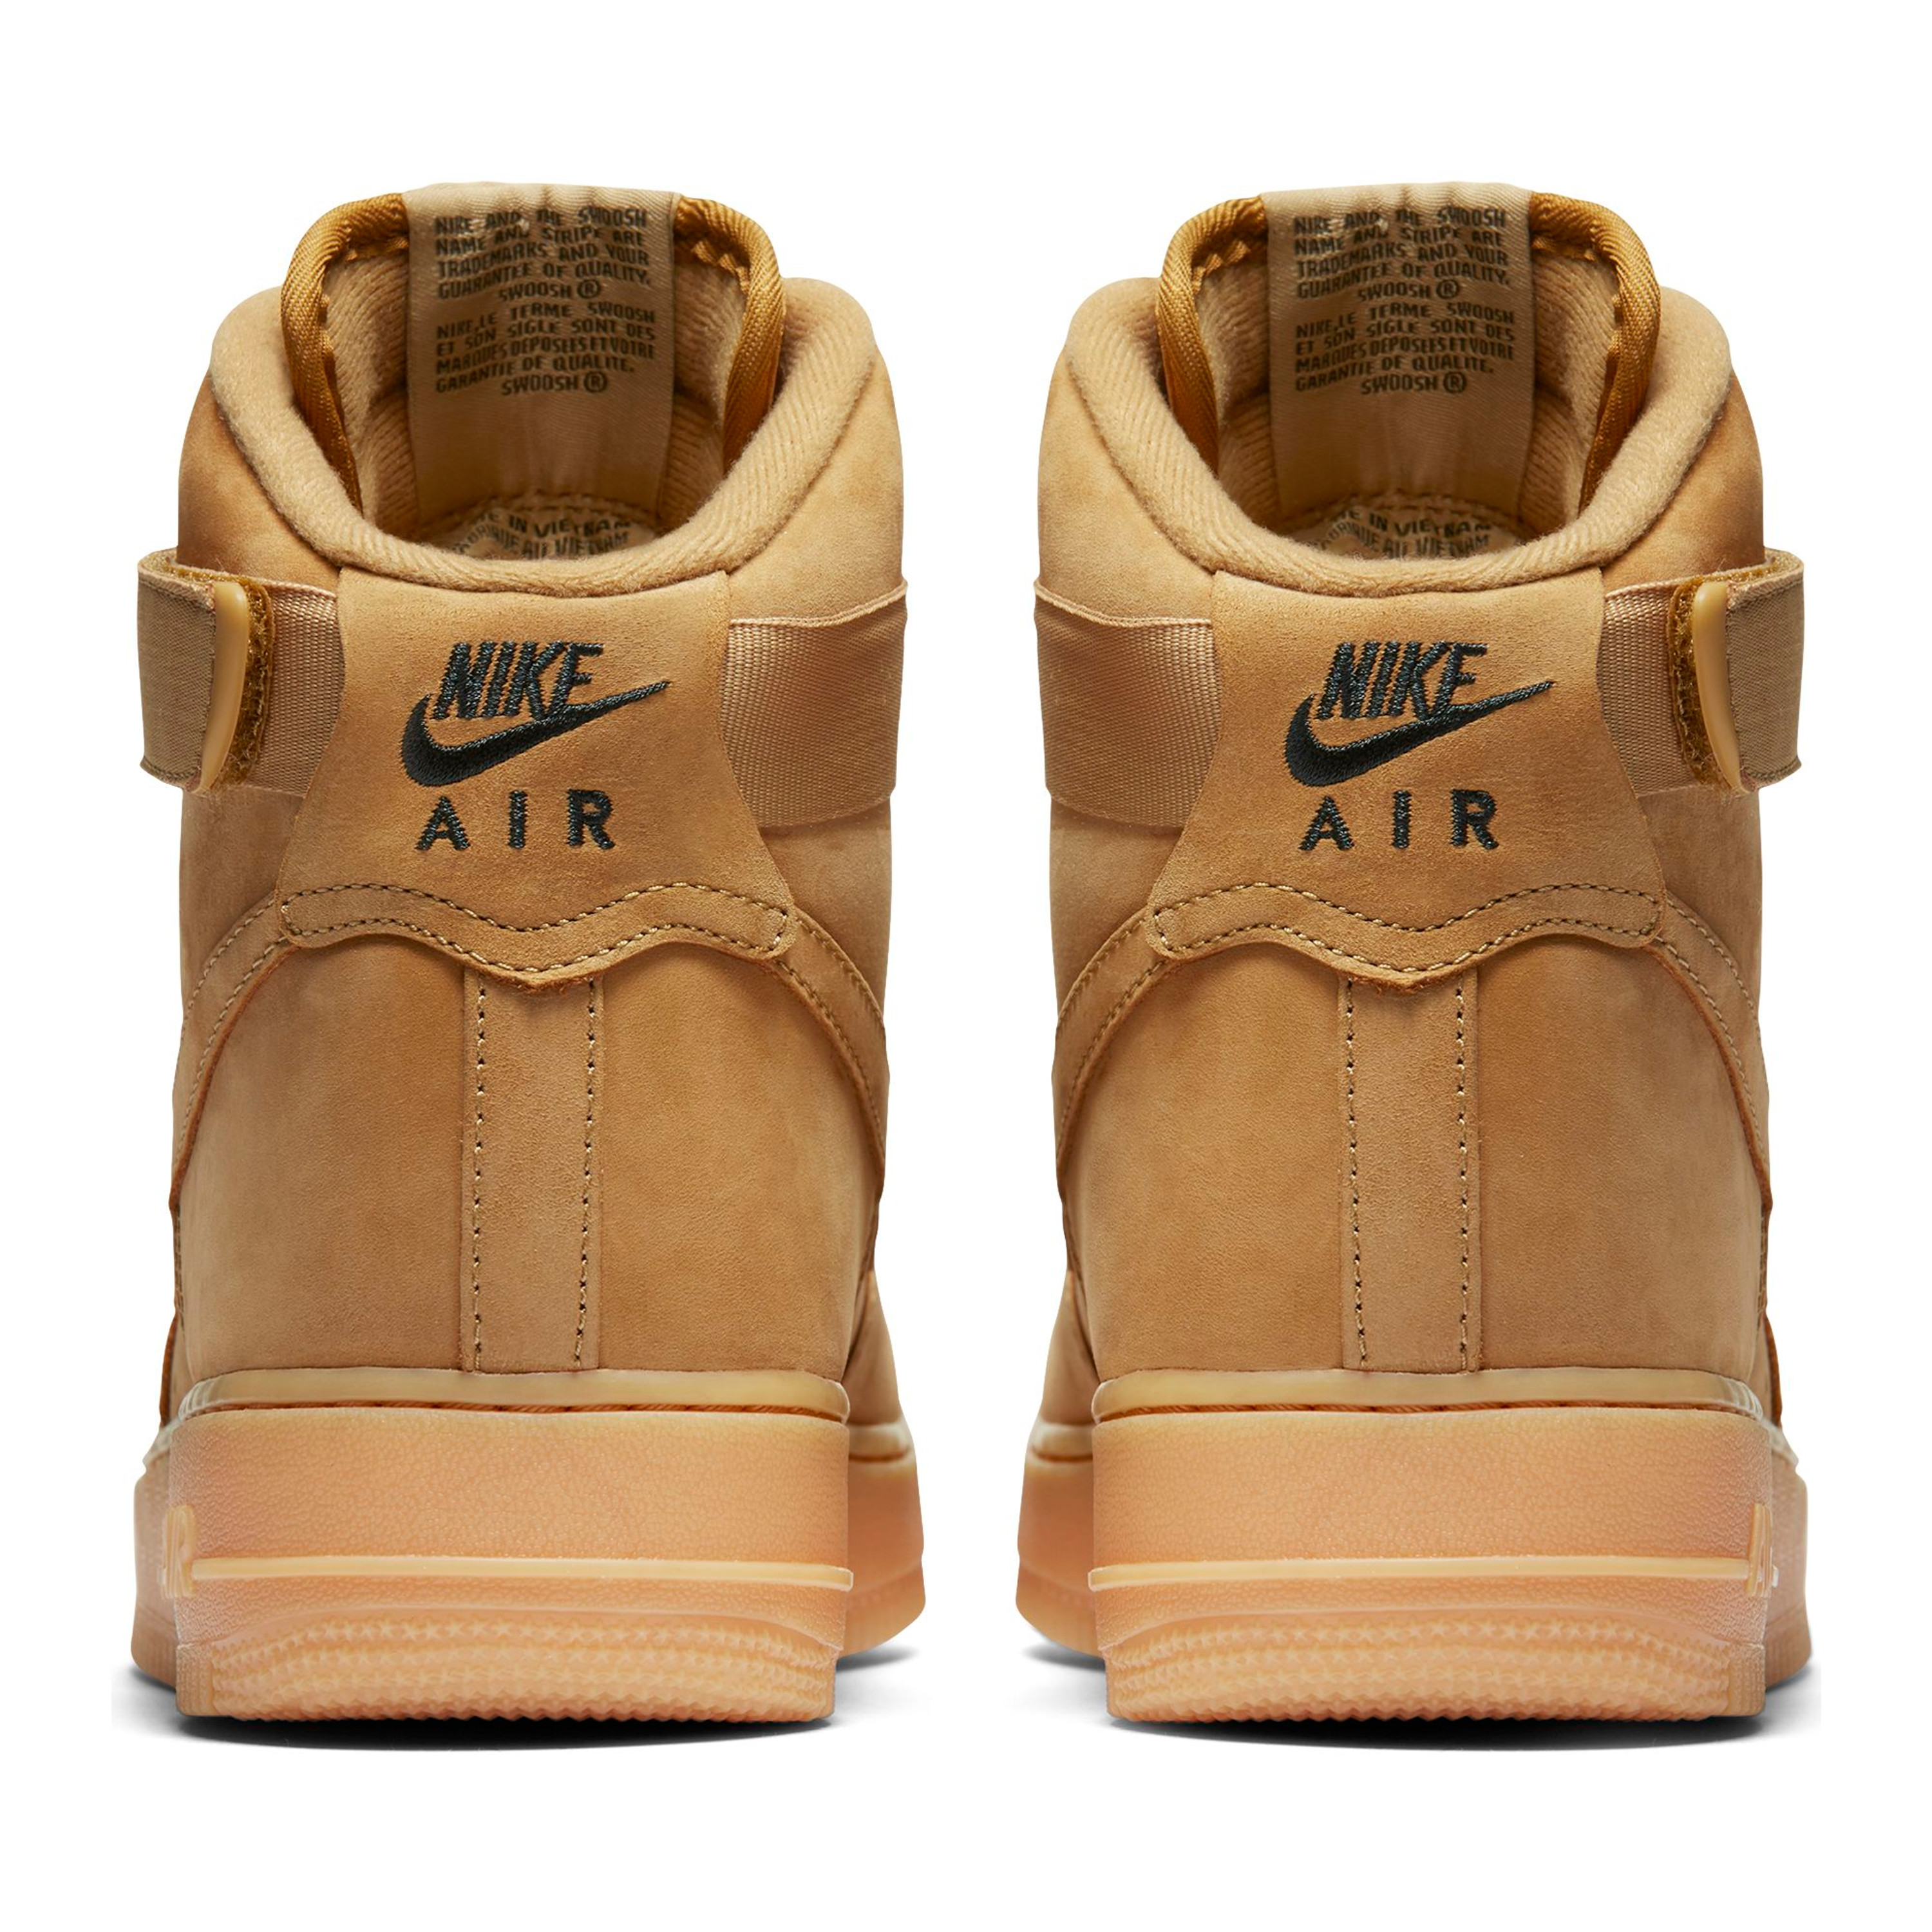 Men's Nike Air Force 1 High '07 Sneakers für Herren in Braun